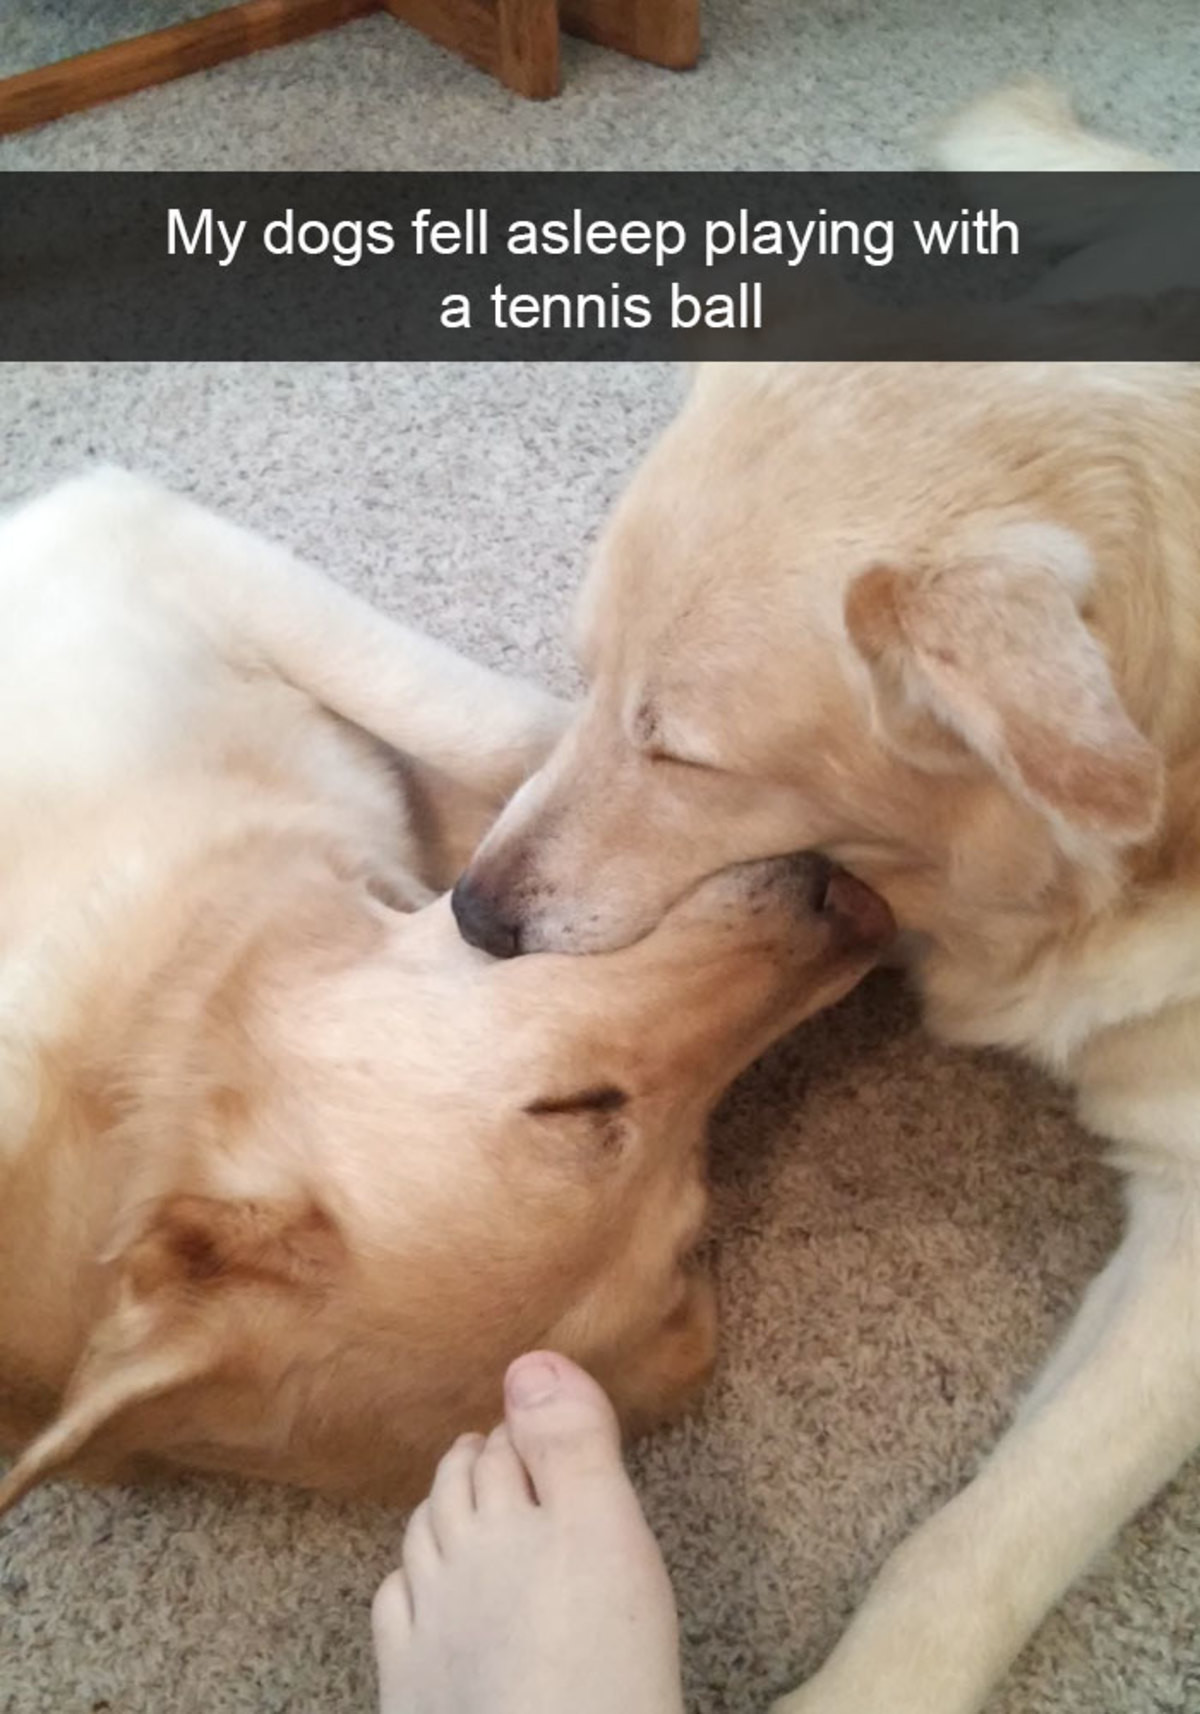 Hilarious Dog Snapchats. join list: CuteDogs (233 subs)Mention Clicks: 4485Msgs Sent: 28713Mention History. My dogs fell asleep playing with a tennis ballEvery